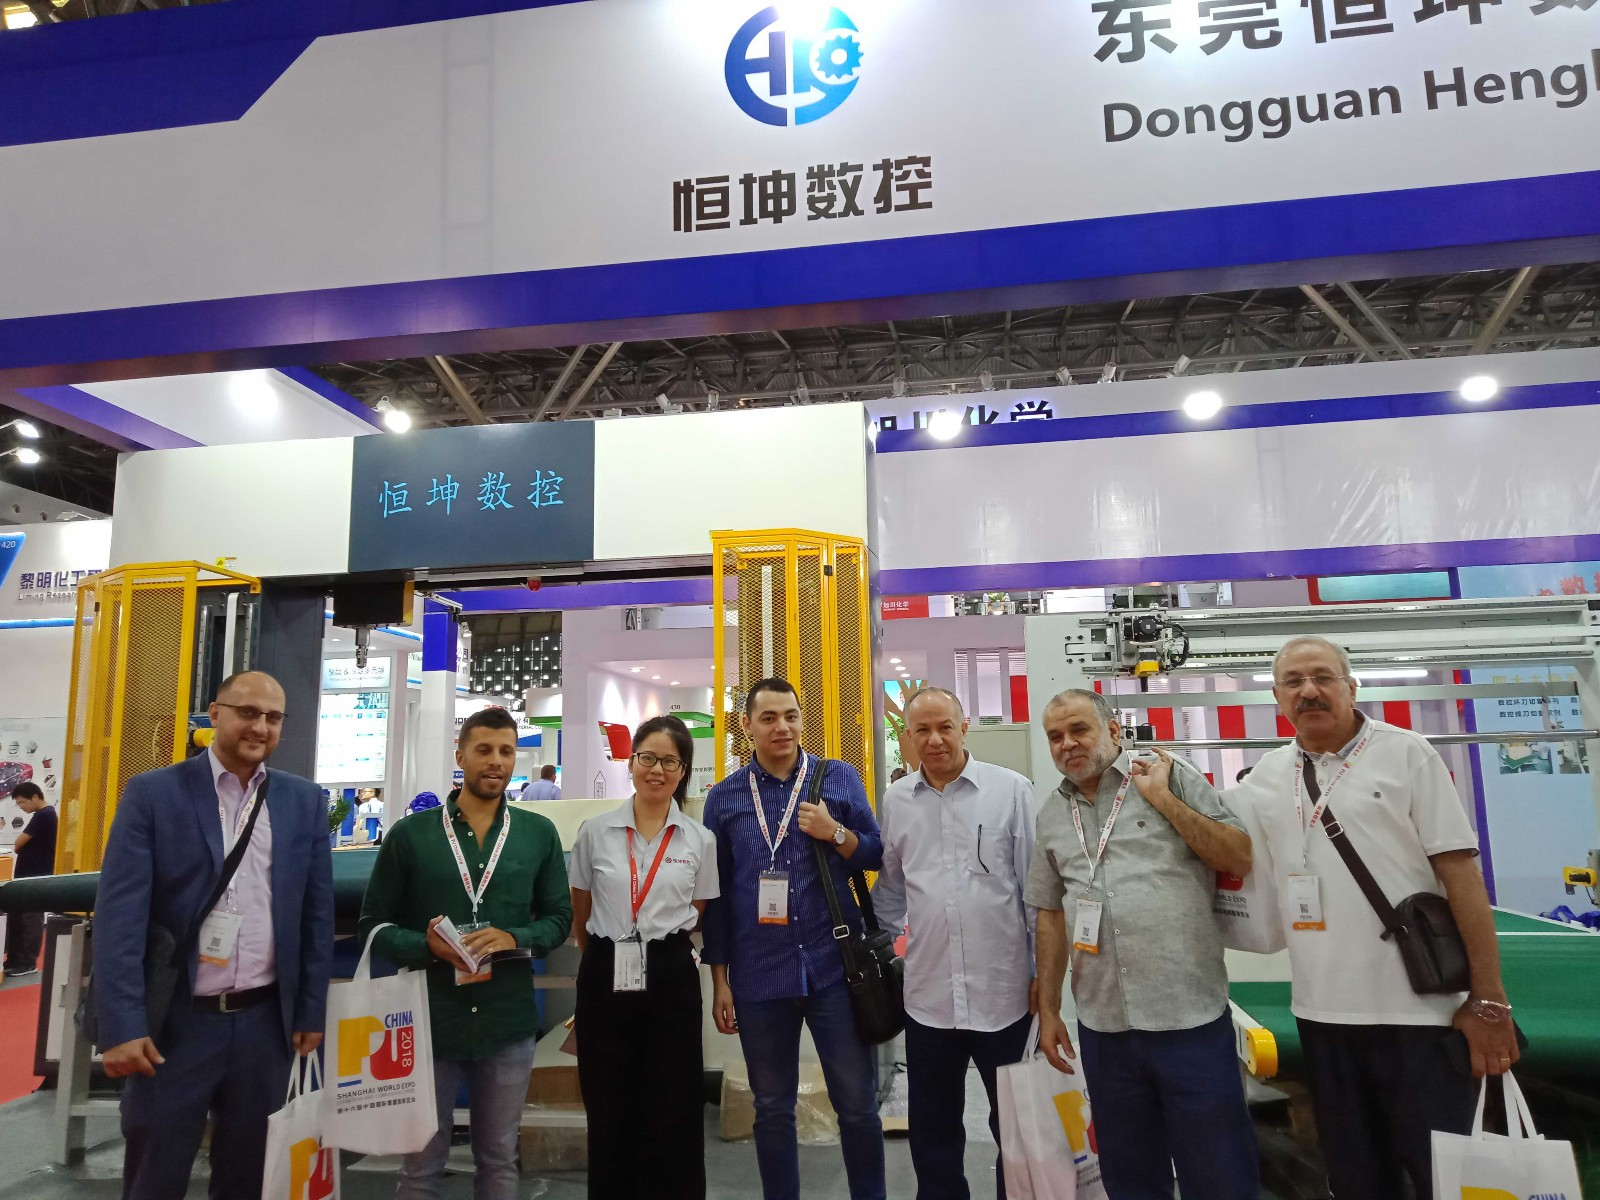 HengKun Appeard in 2018 PU China in Shanghai Atttracting Many Audience